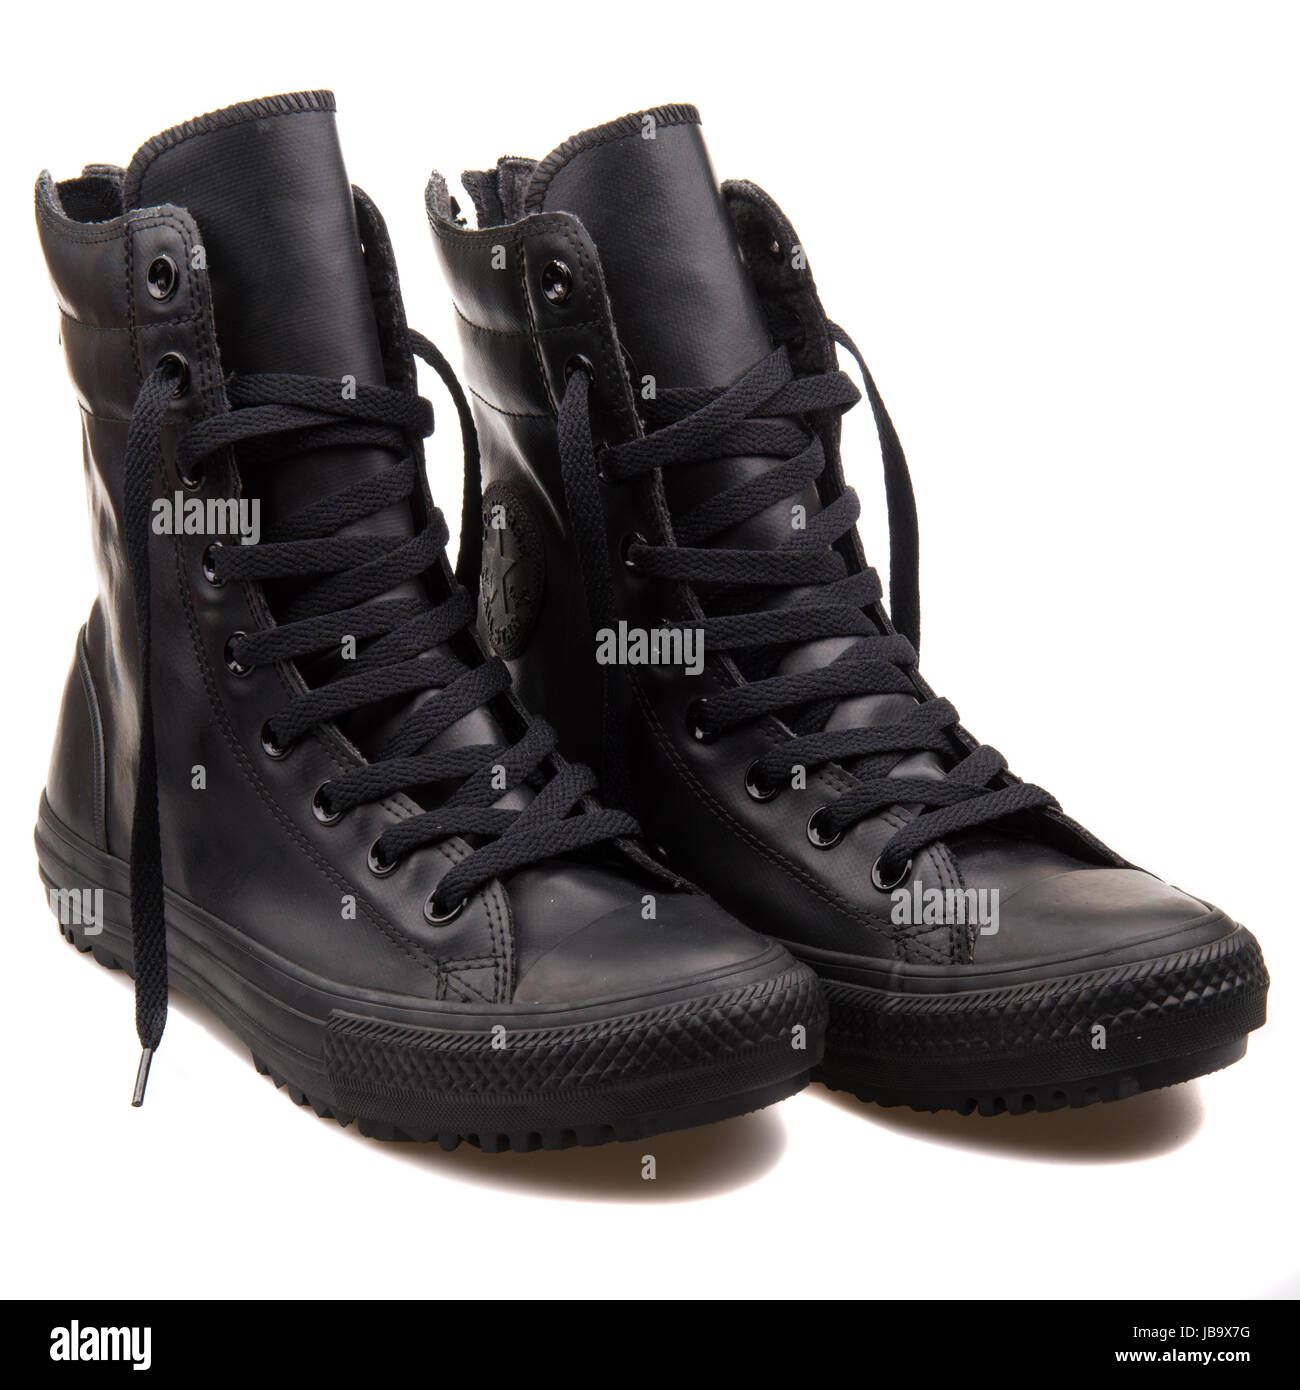 ee113ae331b77c Converse Chuck Taylor All Star Hi-Rise Boot Black Women s Shoes - 549591C -  Stock